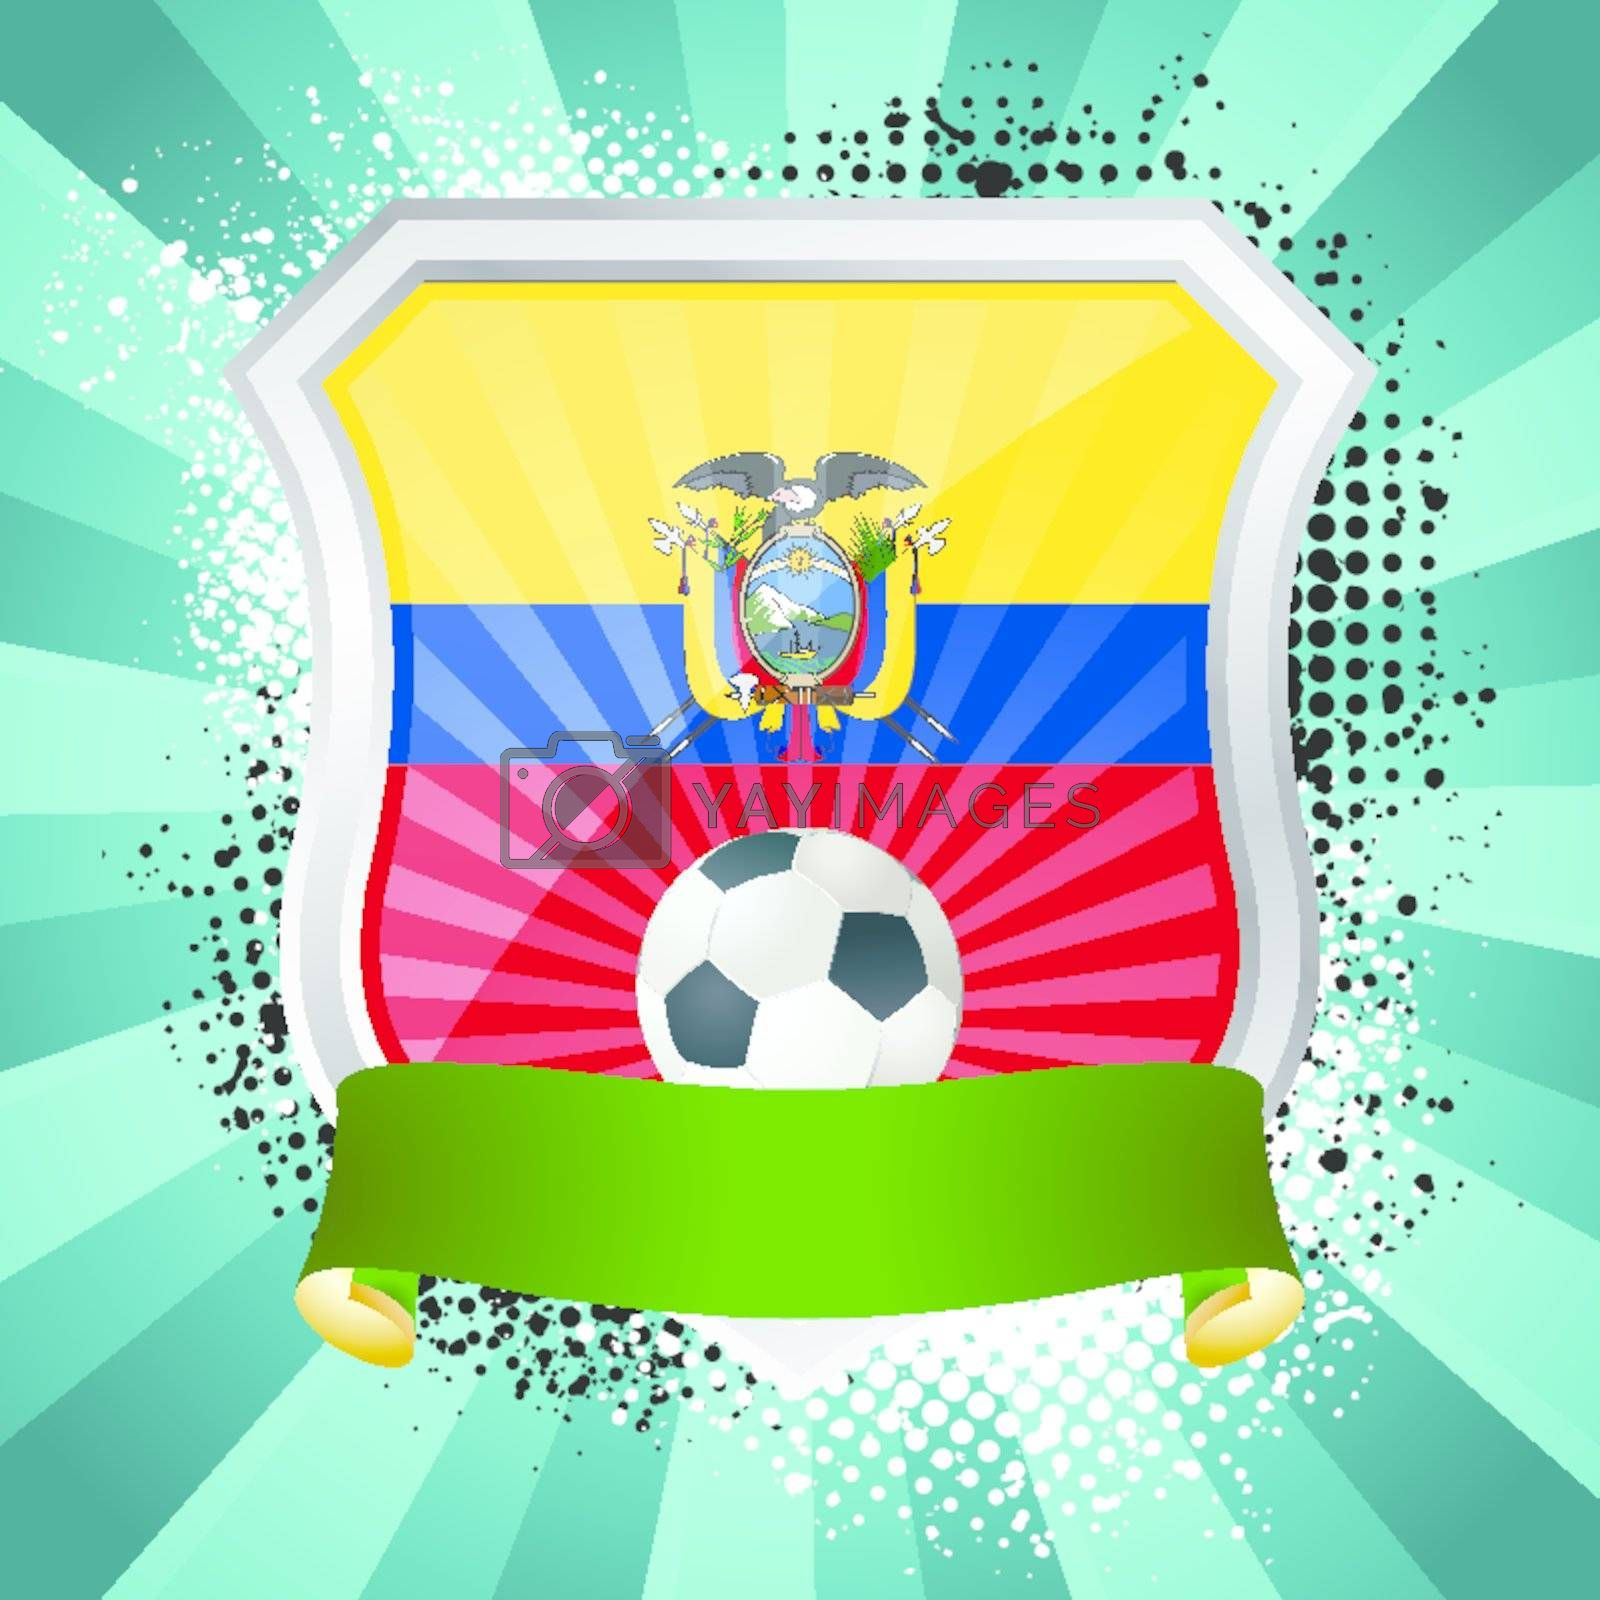 EPS 10. Shiny metal shield on bright background with flag of Ecuador